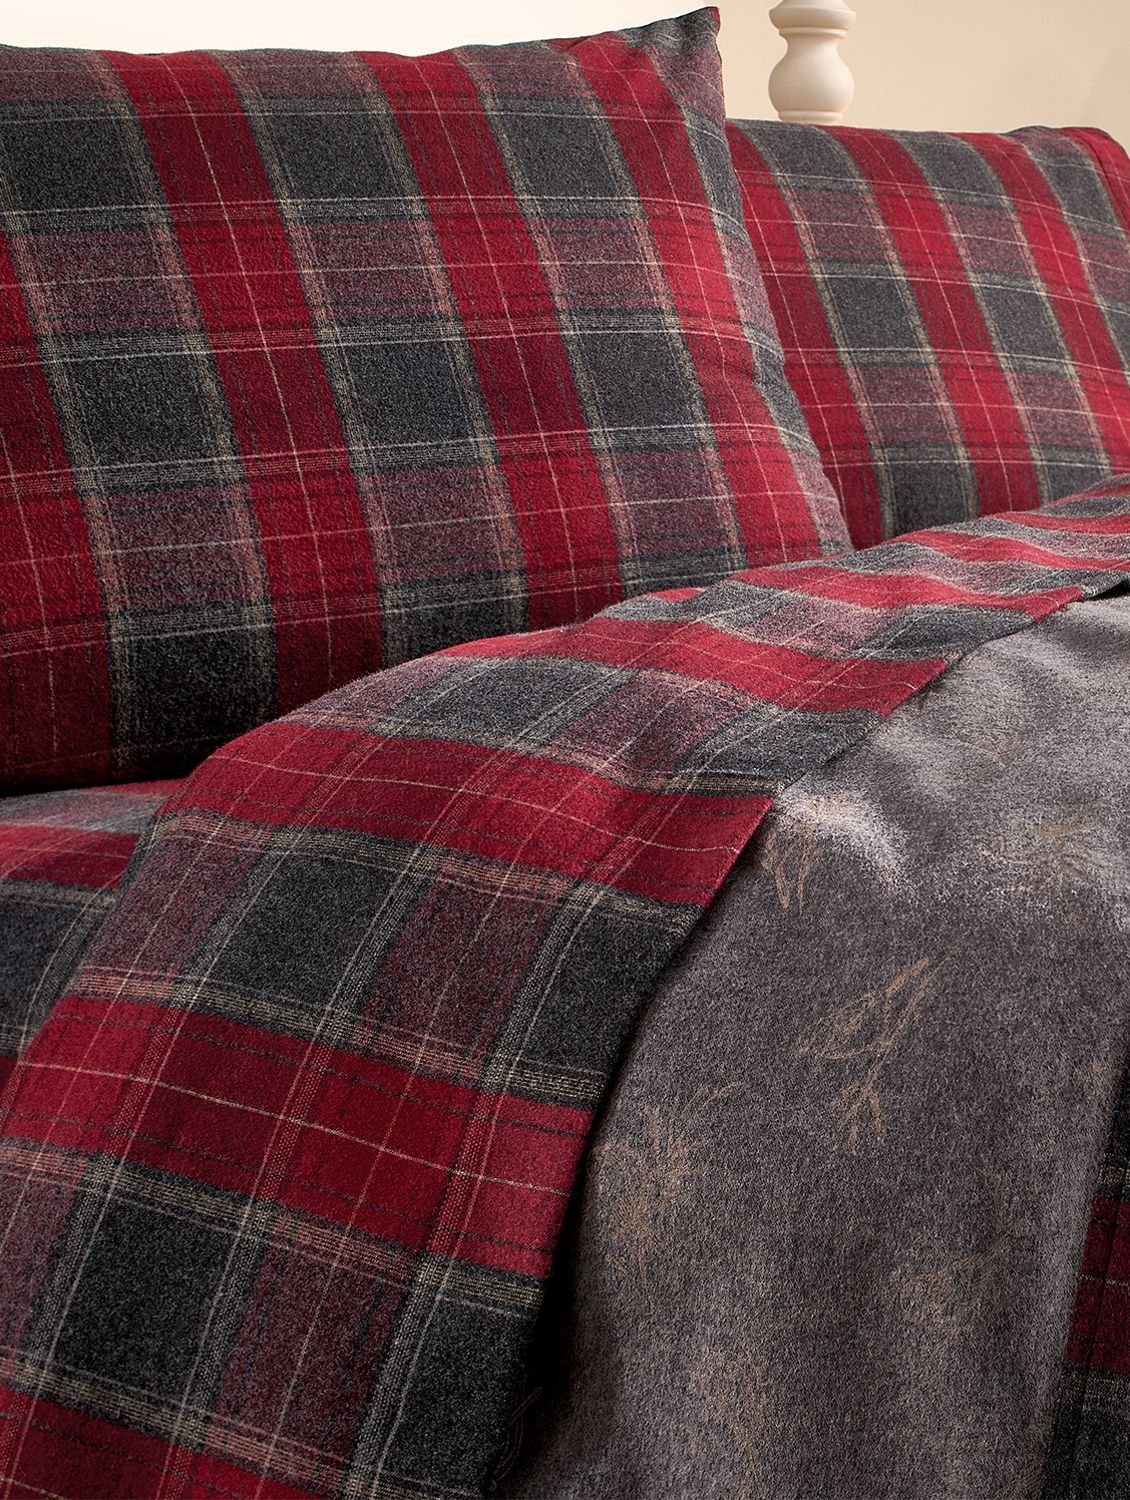 Take A Another Look At Our Heathered Plaid Double Flannel Blanket It S Just As Beautiful As It Is Cozy Plaid Bedding Flannel Blanket Plaid Sheets